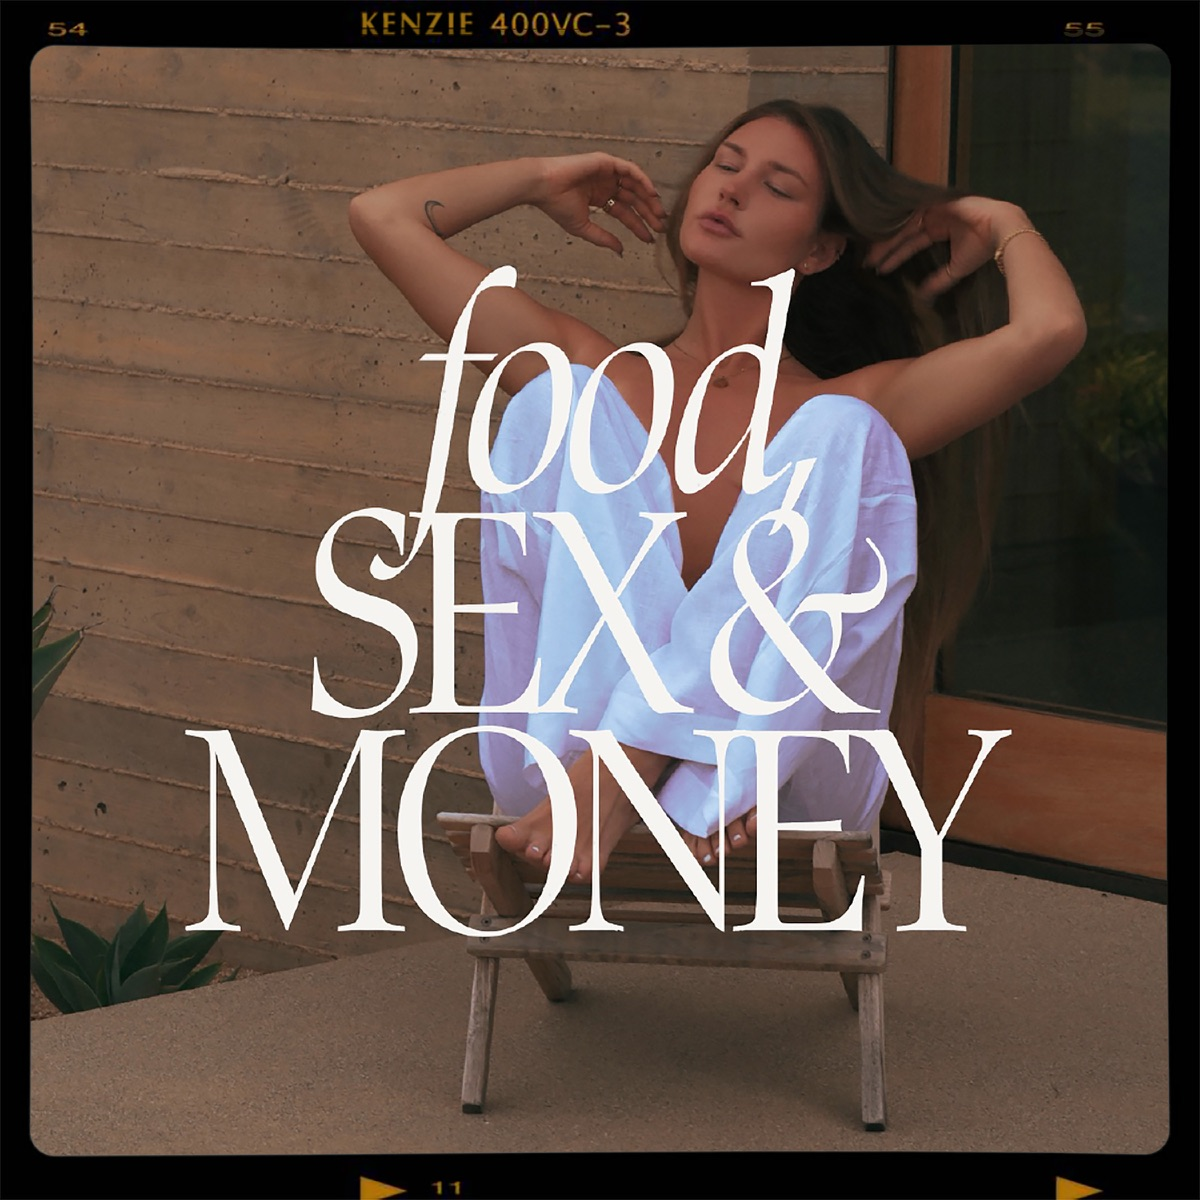 Food, Sex & Money